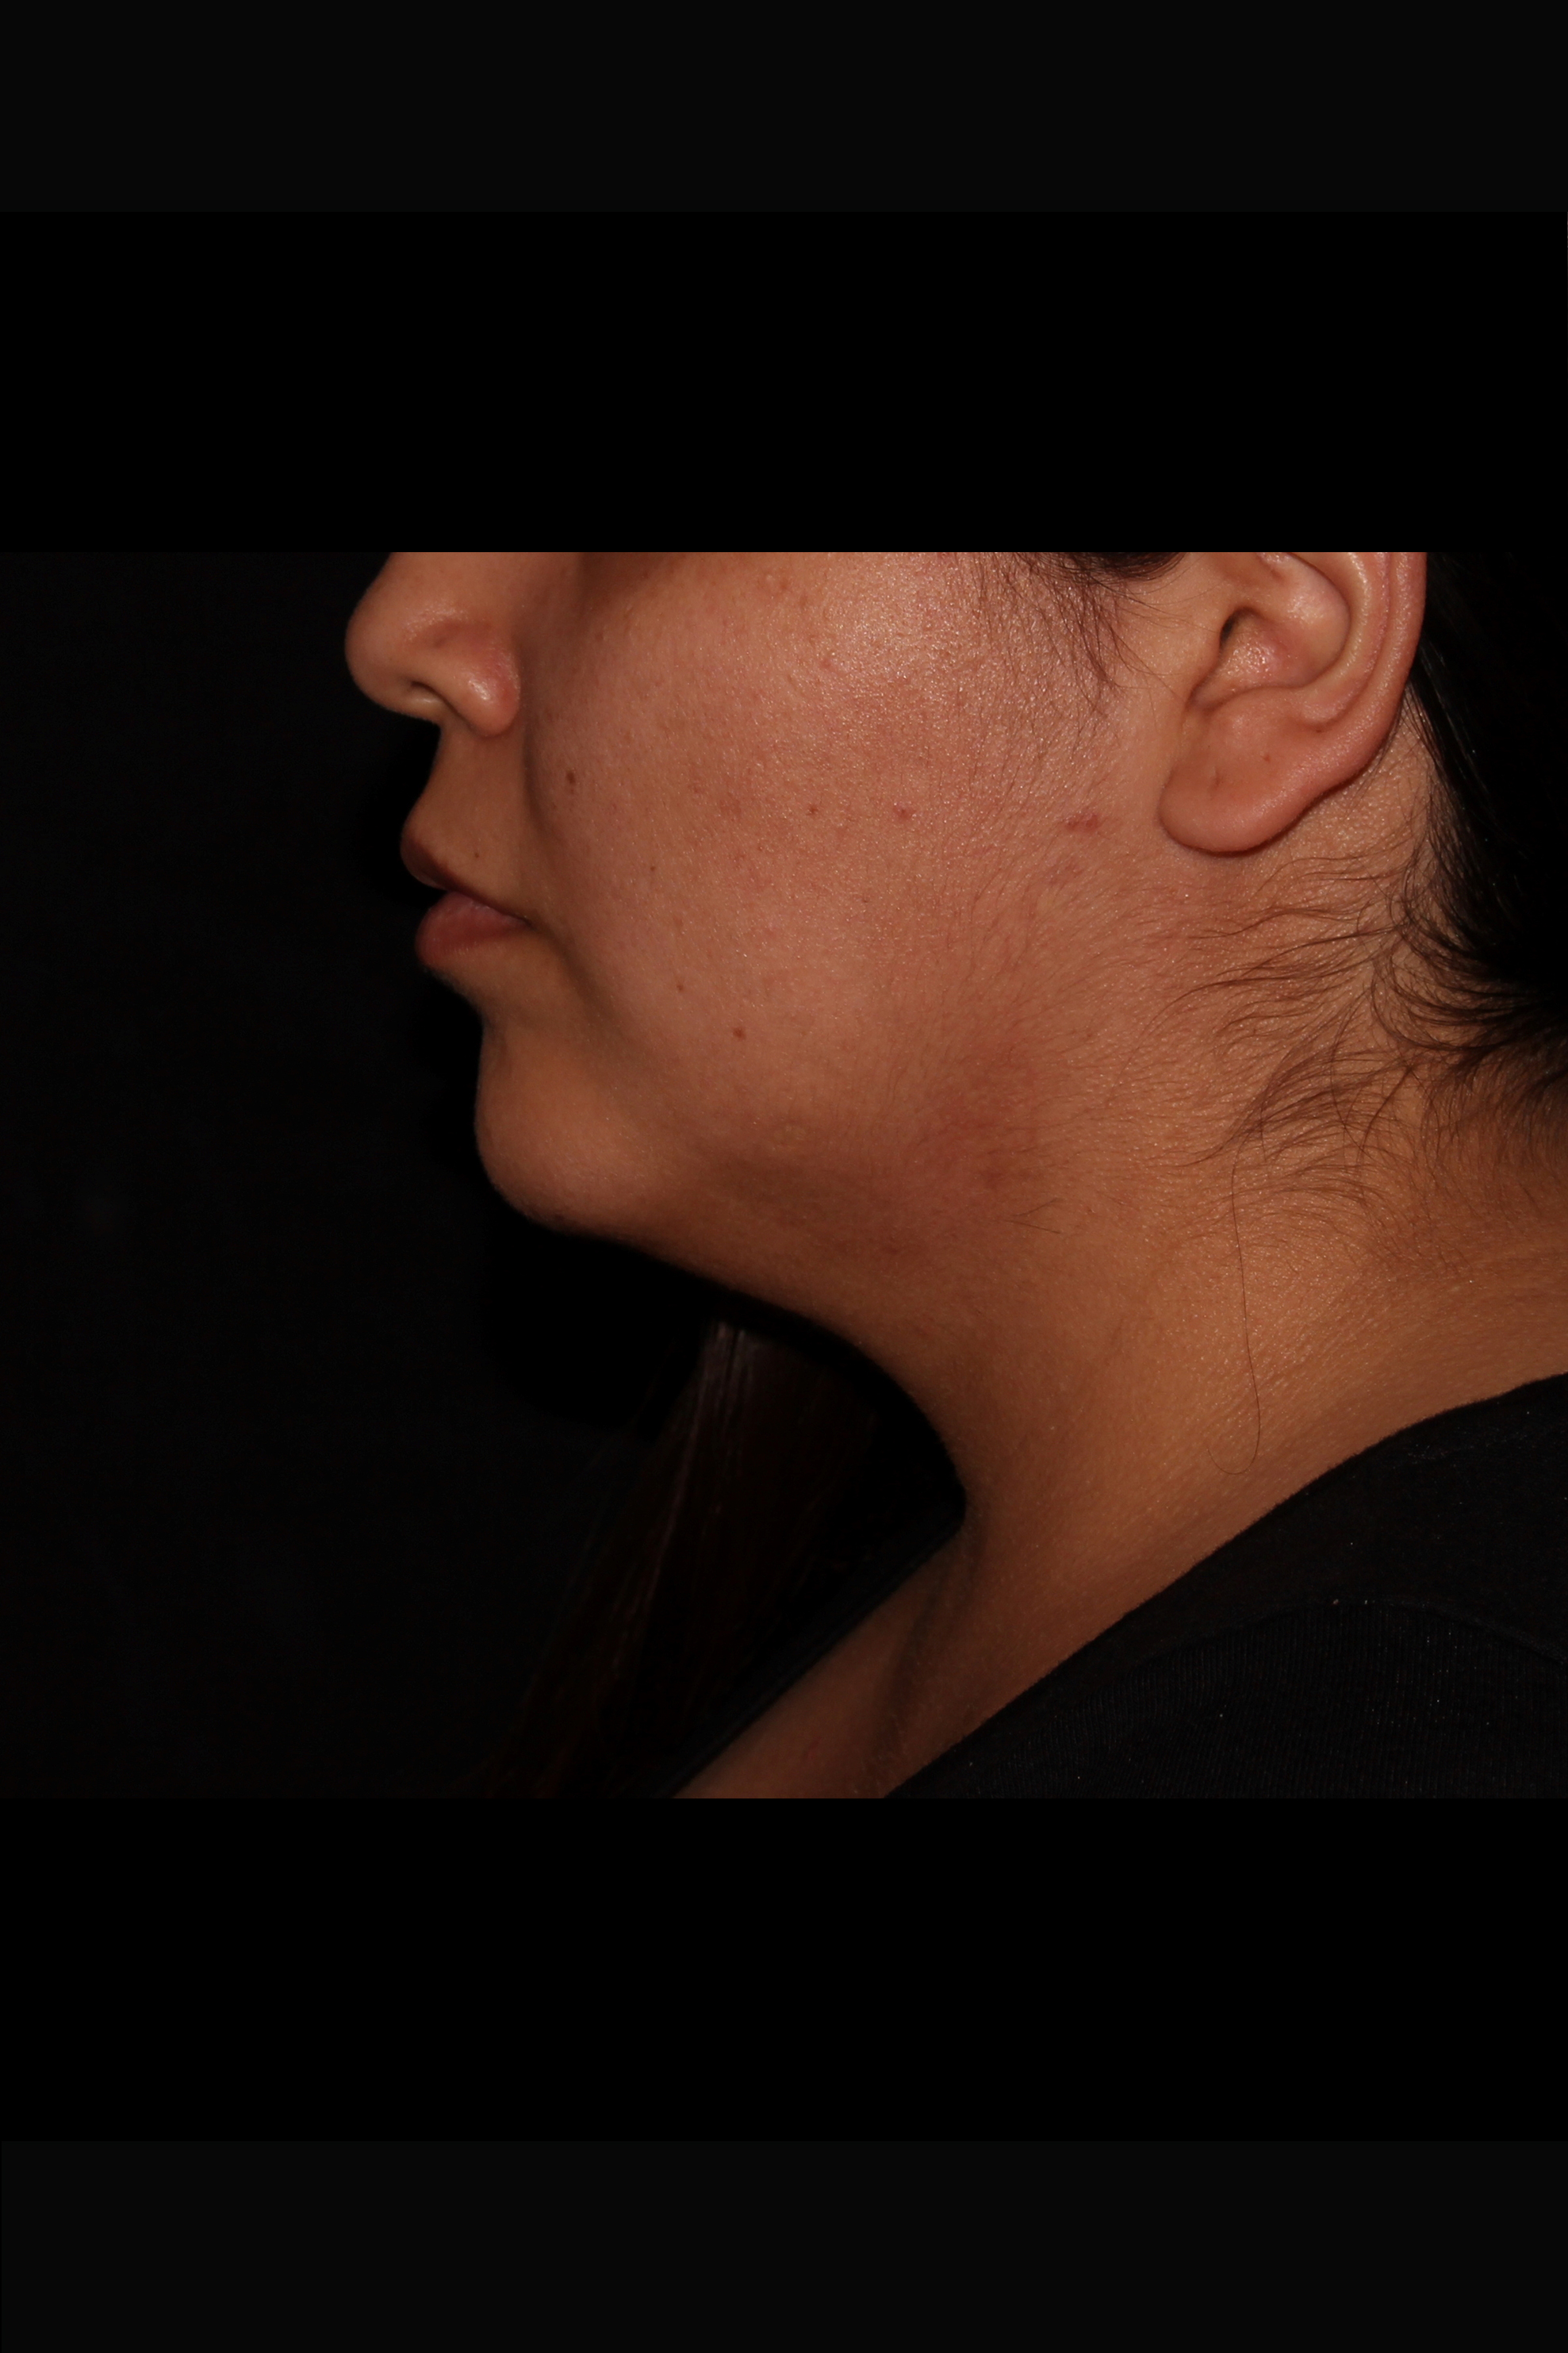 Before Neck Liposuction - Chin liposuction